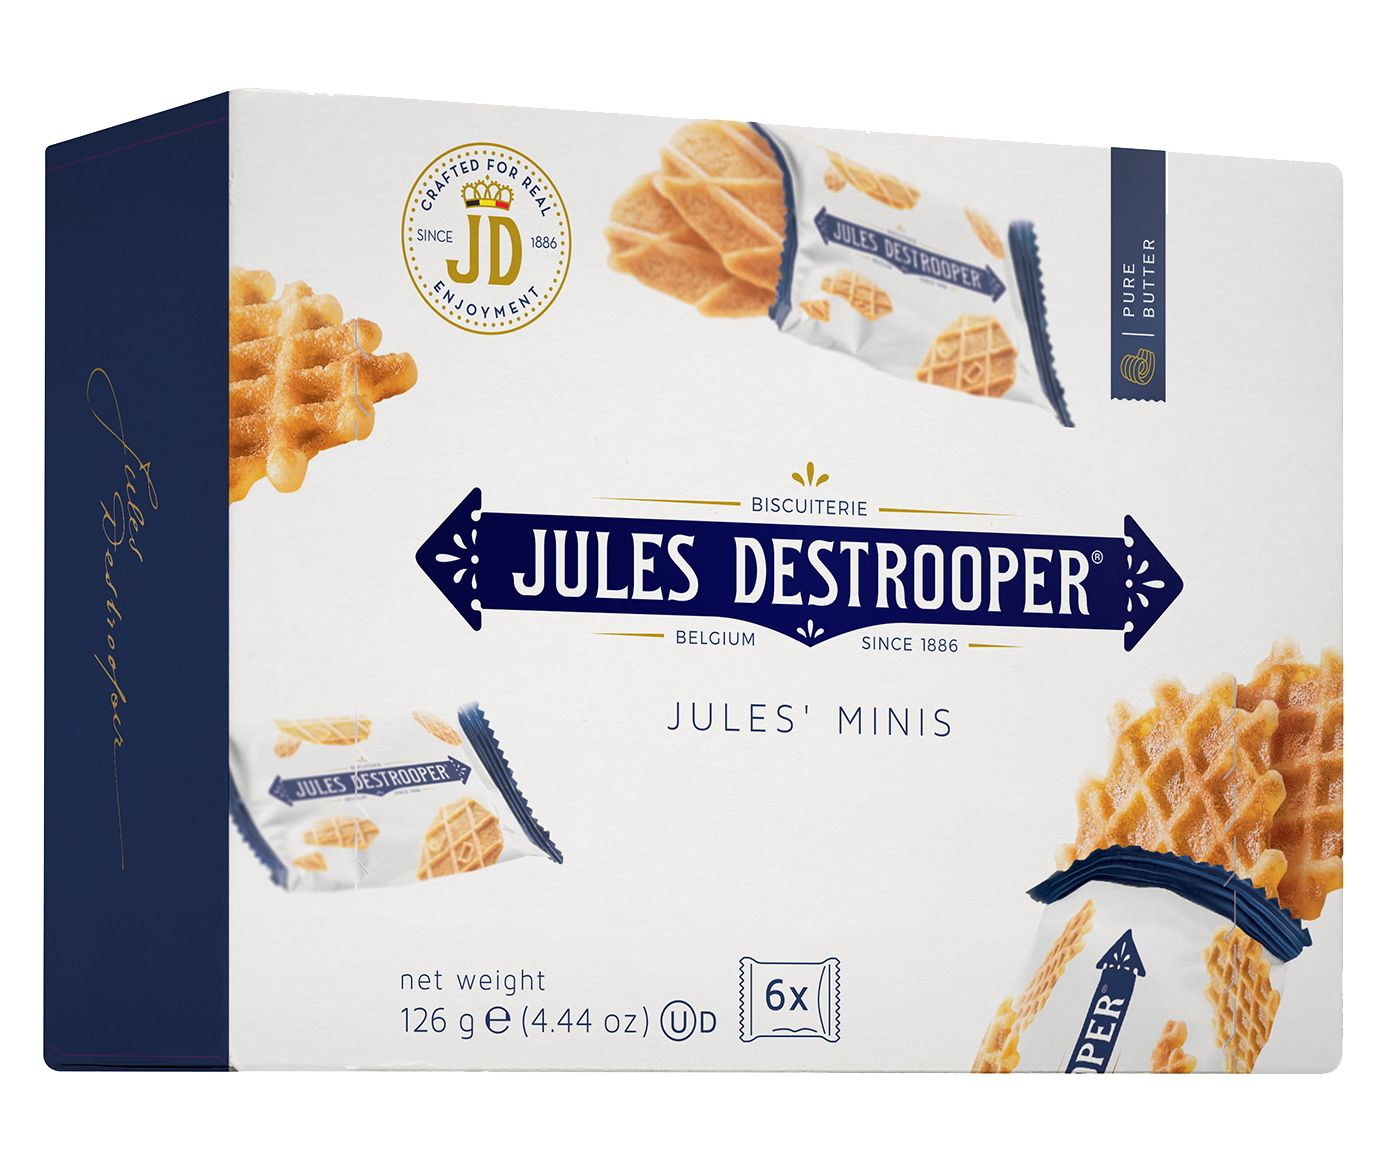 Biscoito Belga Jules D. Minis - 126G | Westwing.com.br